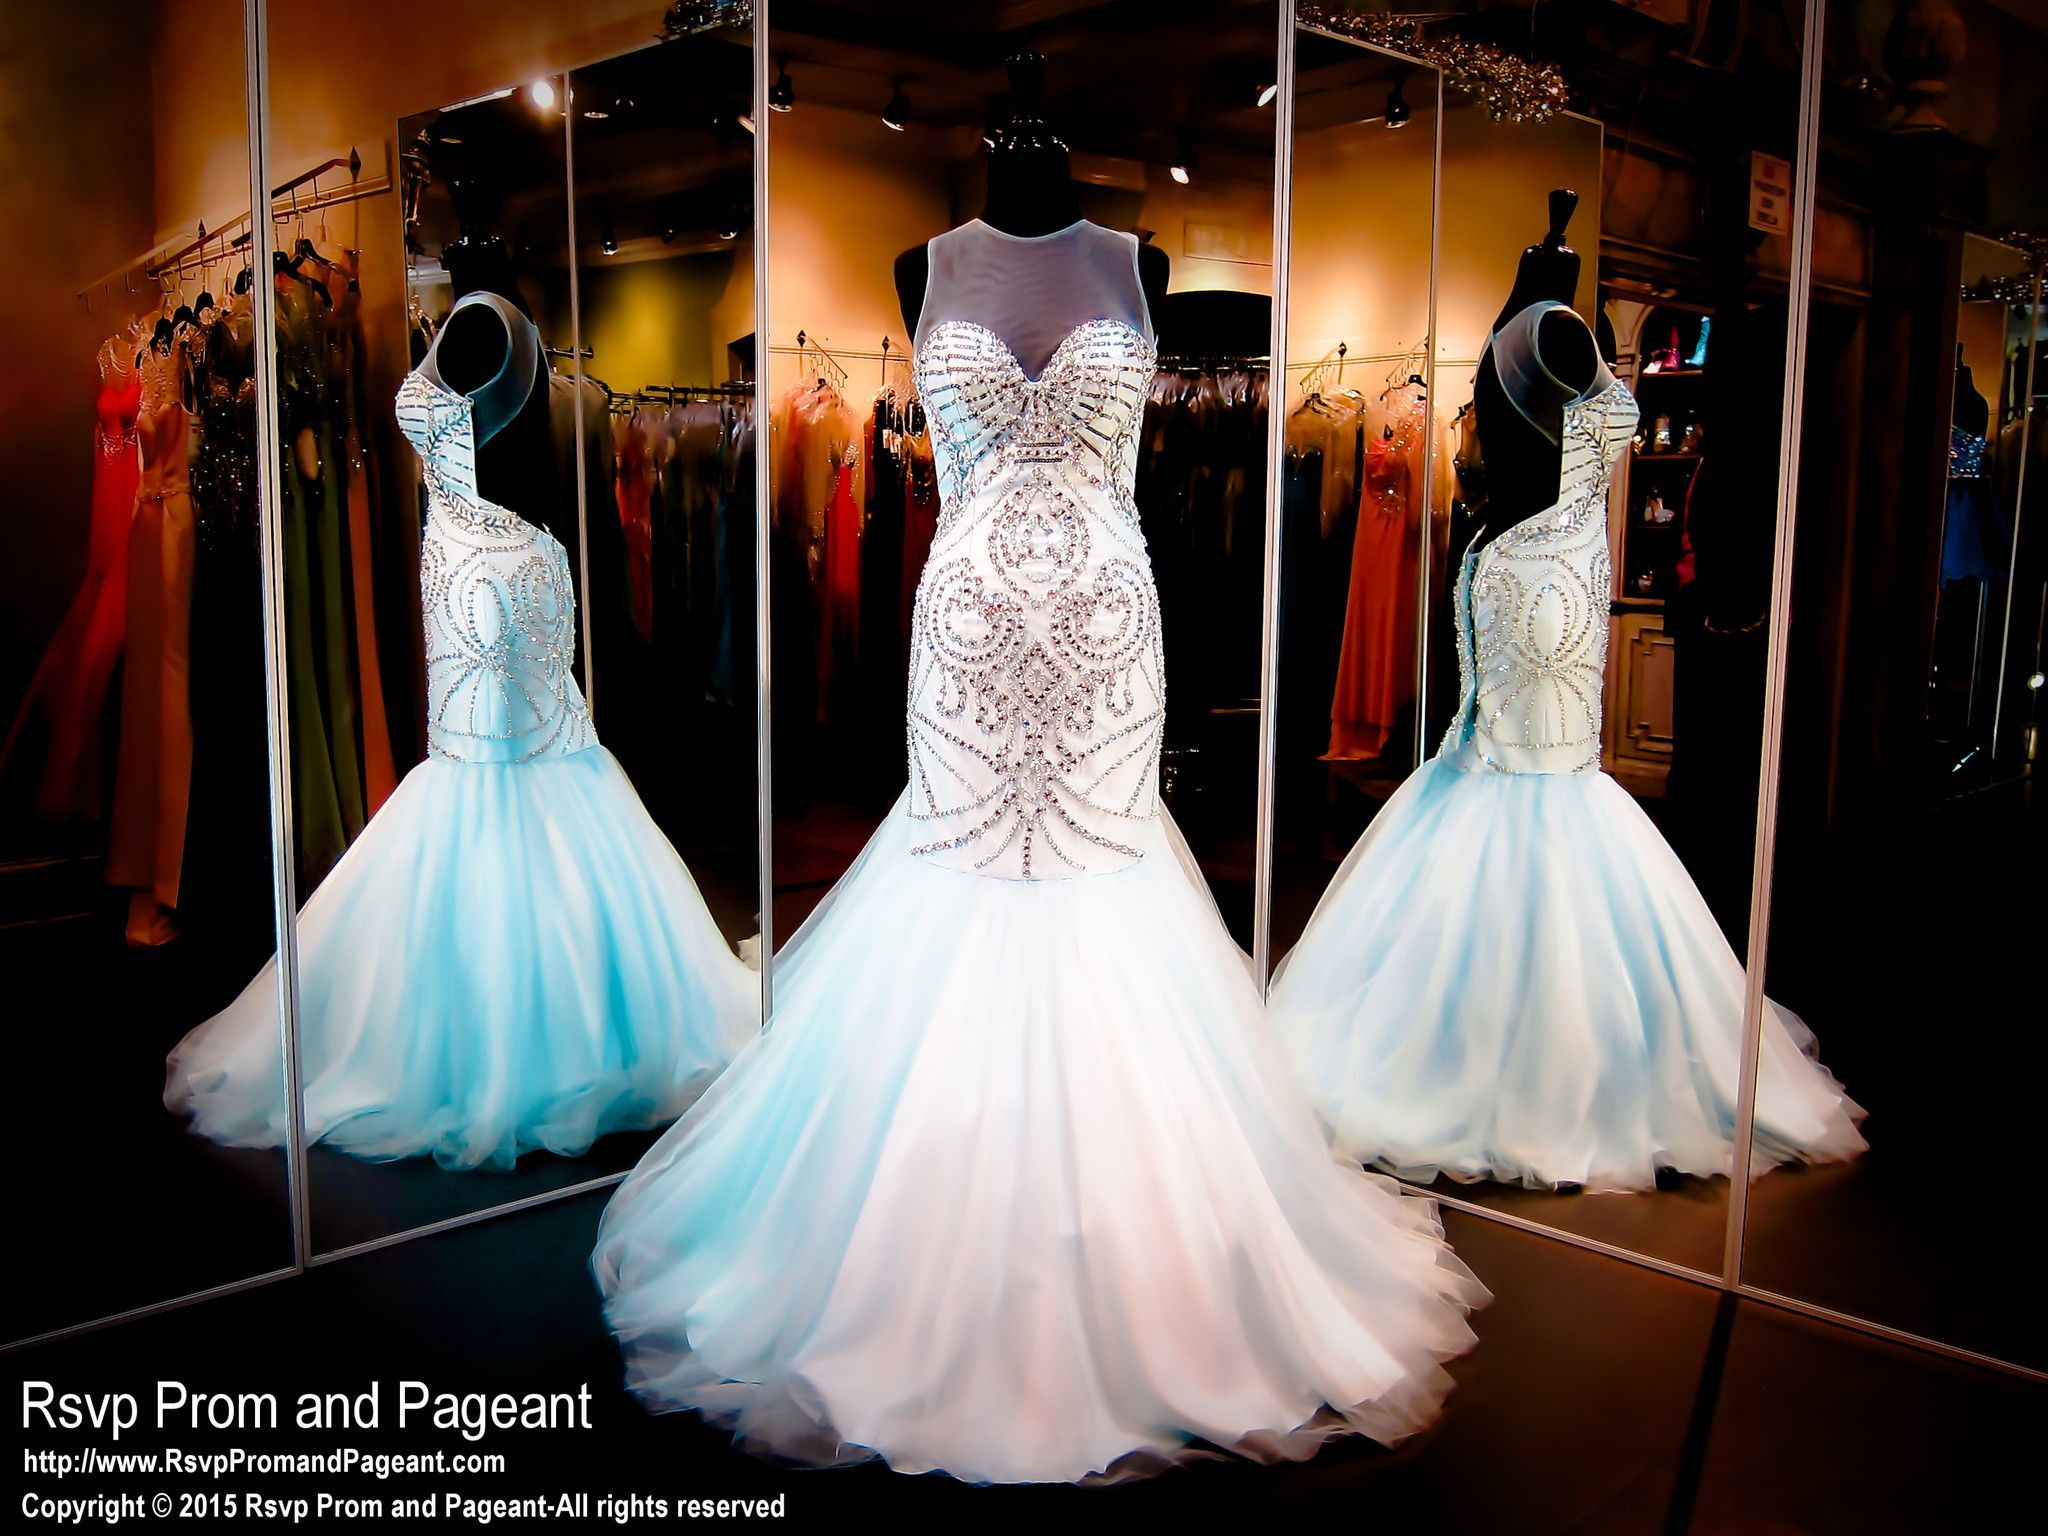 Powder Blue Beaded Mermaid Prom Pageant Dress High Illusion Neckline Open Back 115ra028200 At Rsvp Pro Prom Pageant Dress Pageant Dresses Stunning Prom Dresses